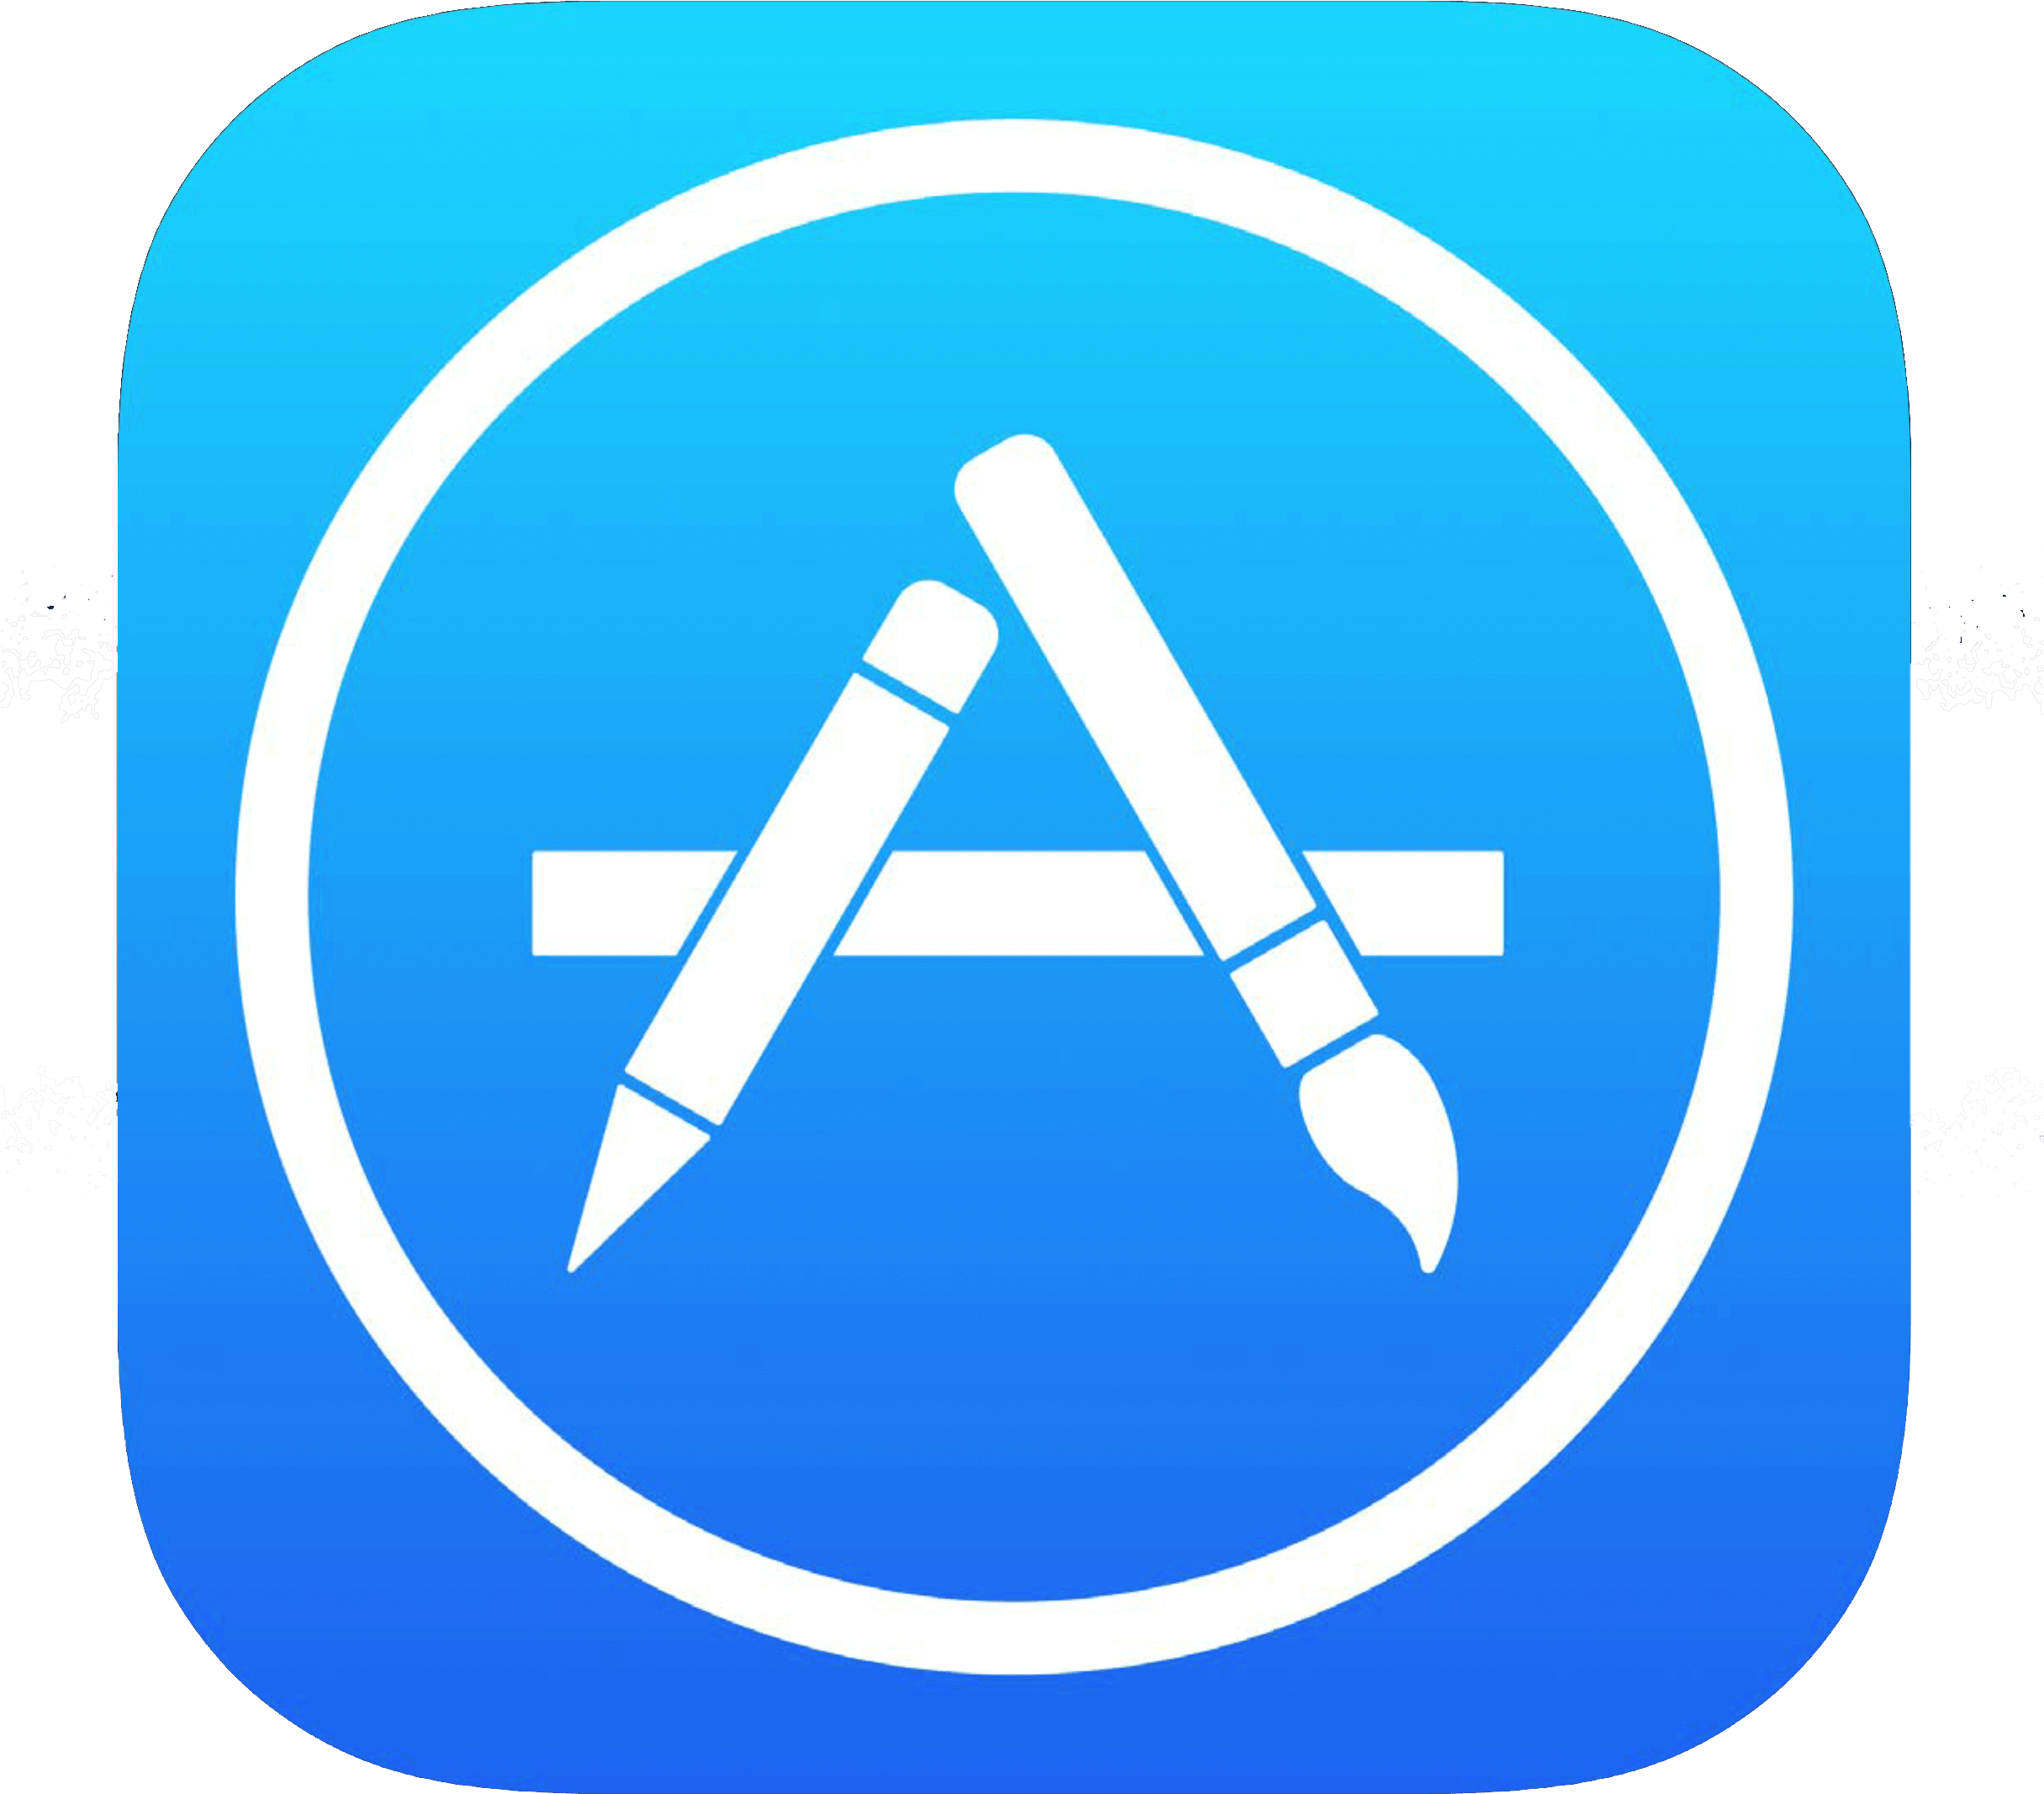 Ios - Transparent App Store Icon Clipart (2431x2460), Png Download